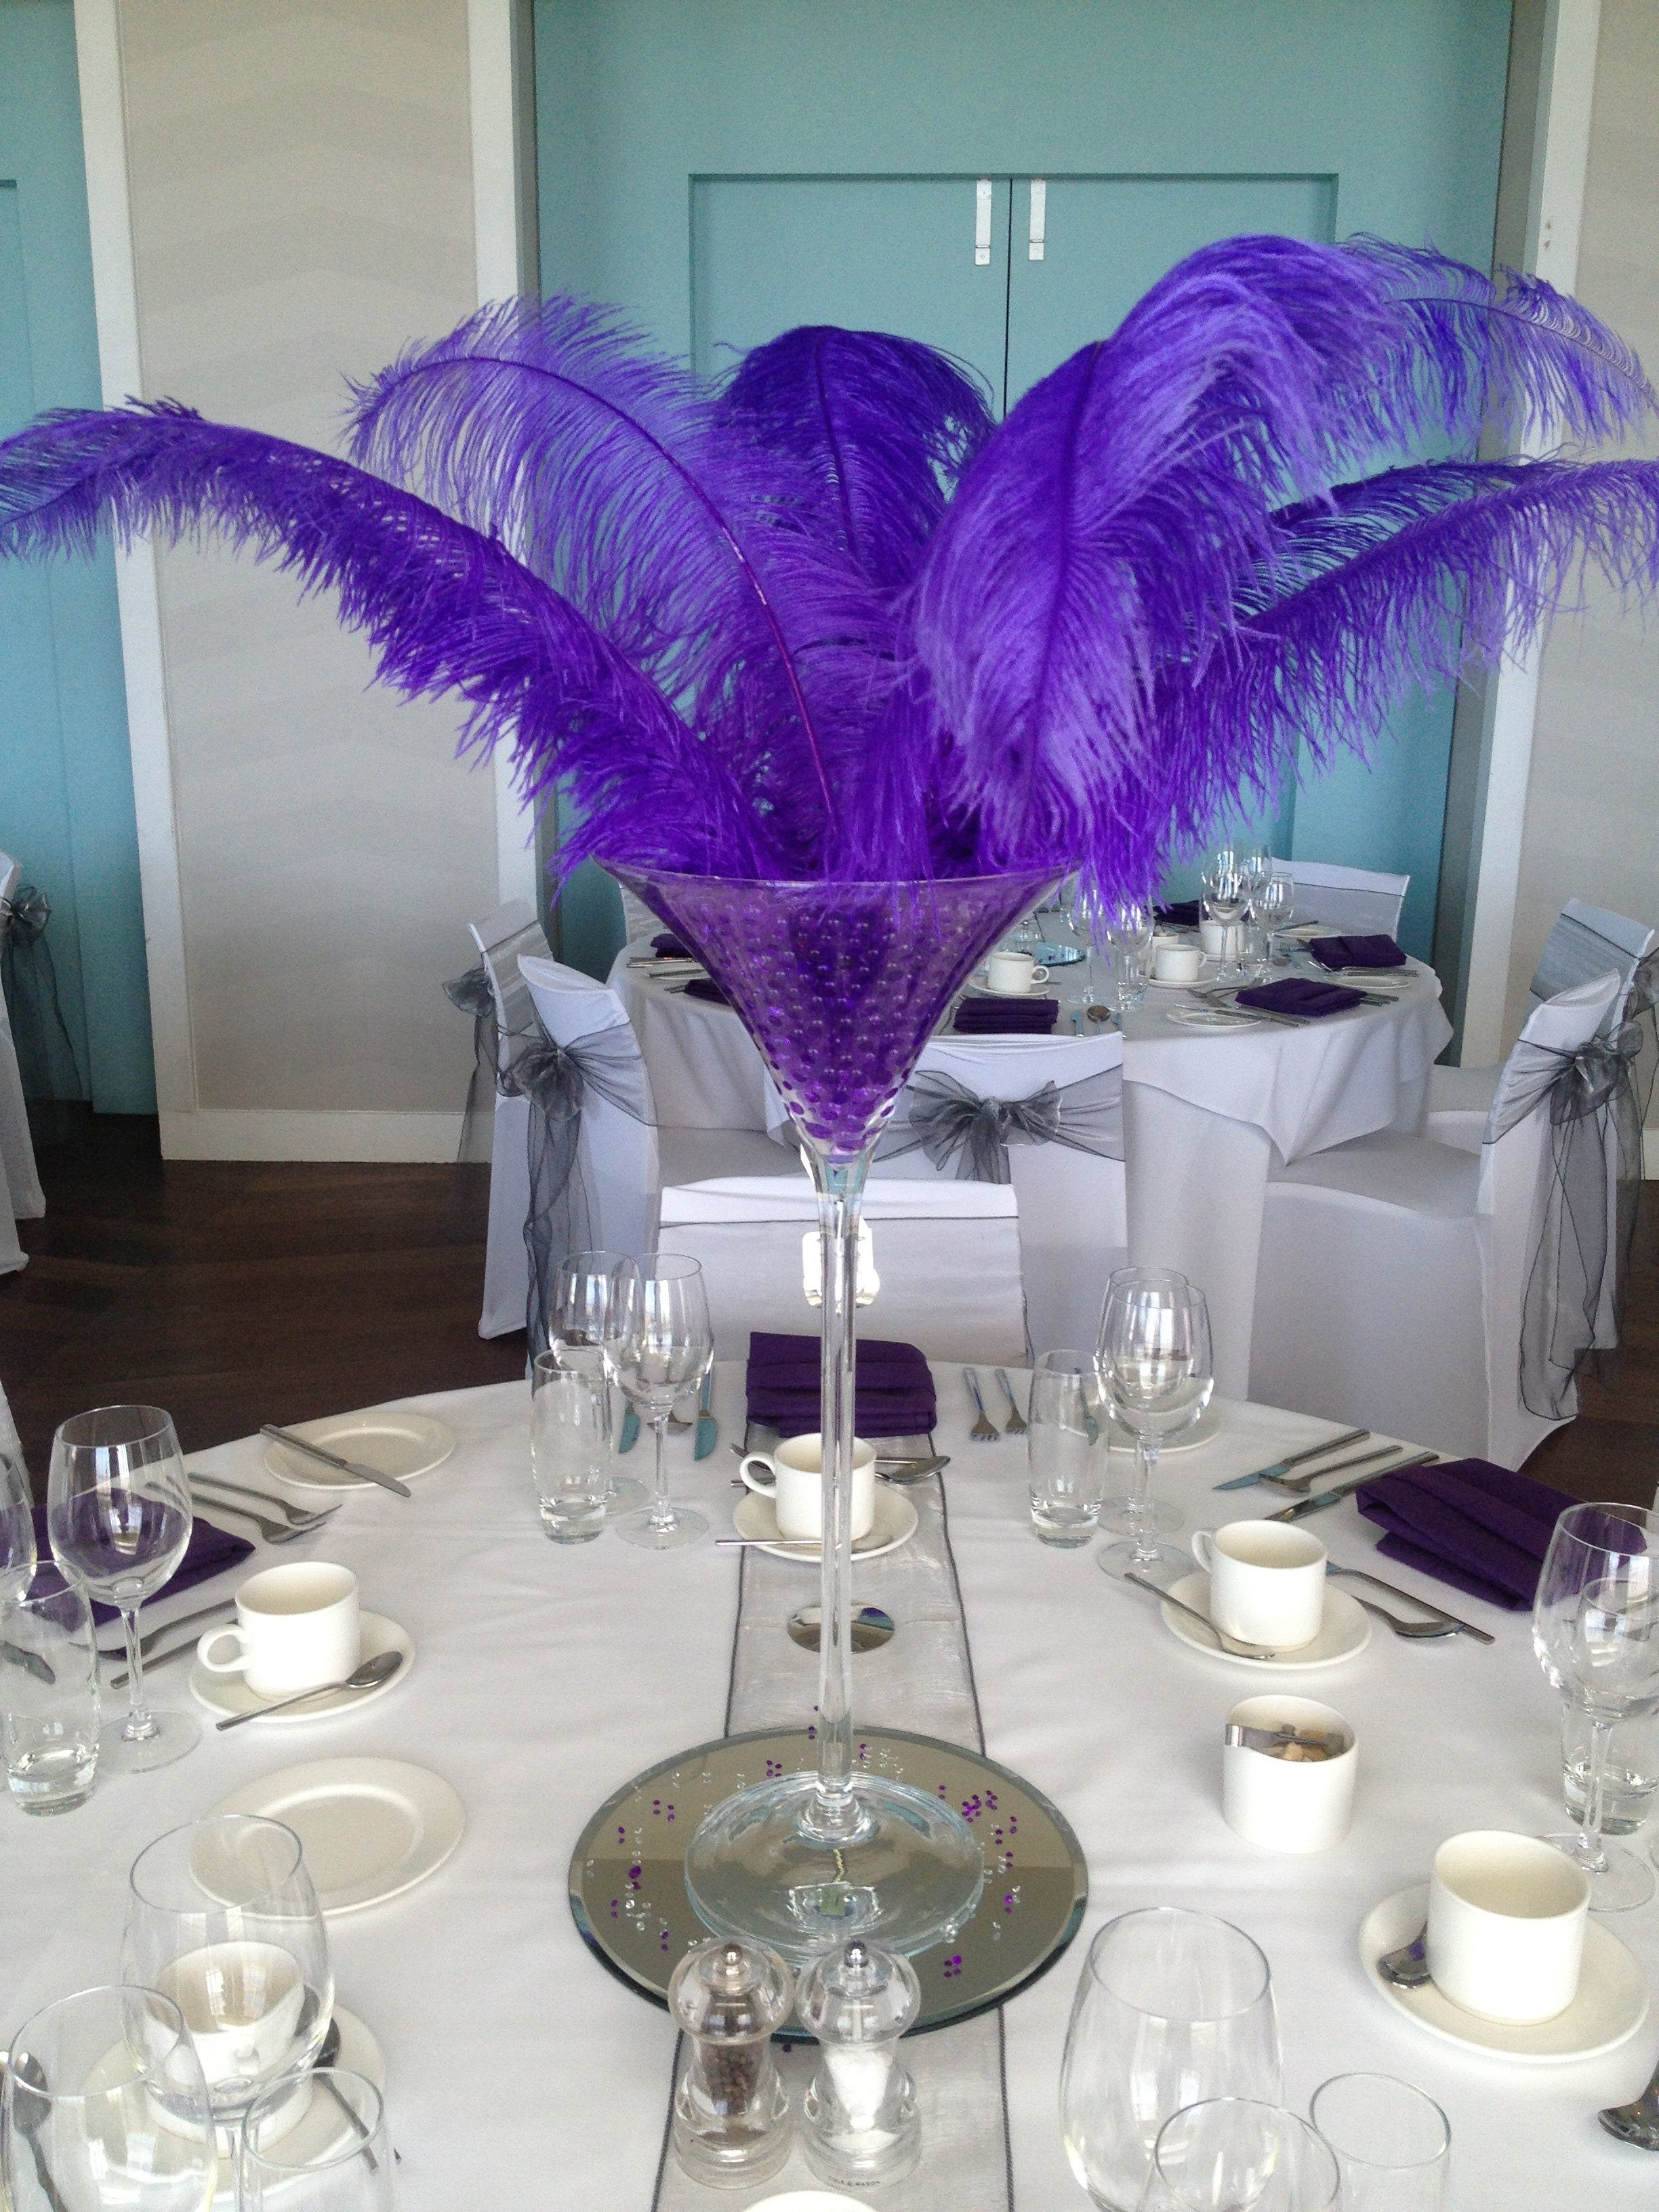 Masquerade Ball Decorations Too Big And Purple But What About Smallershorted Version Seems